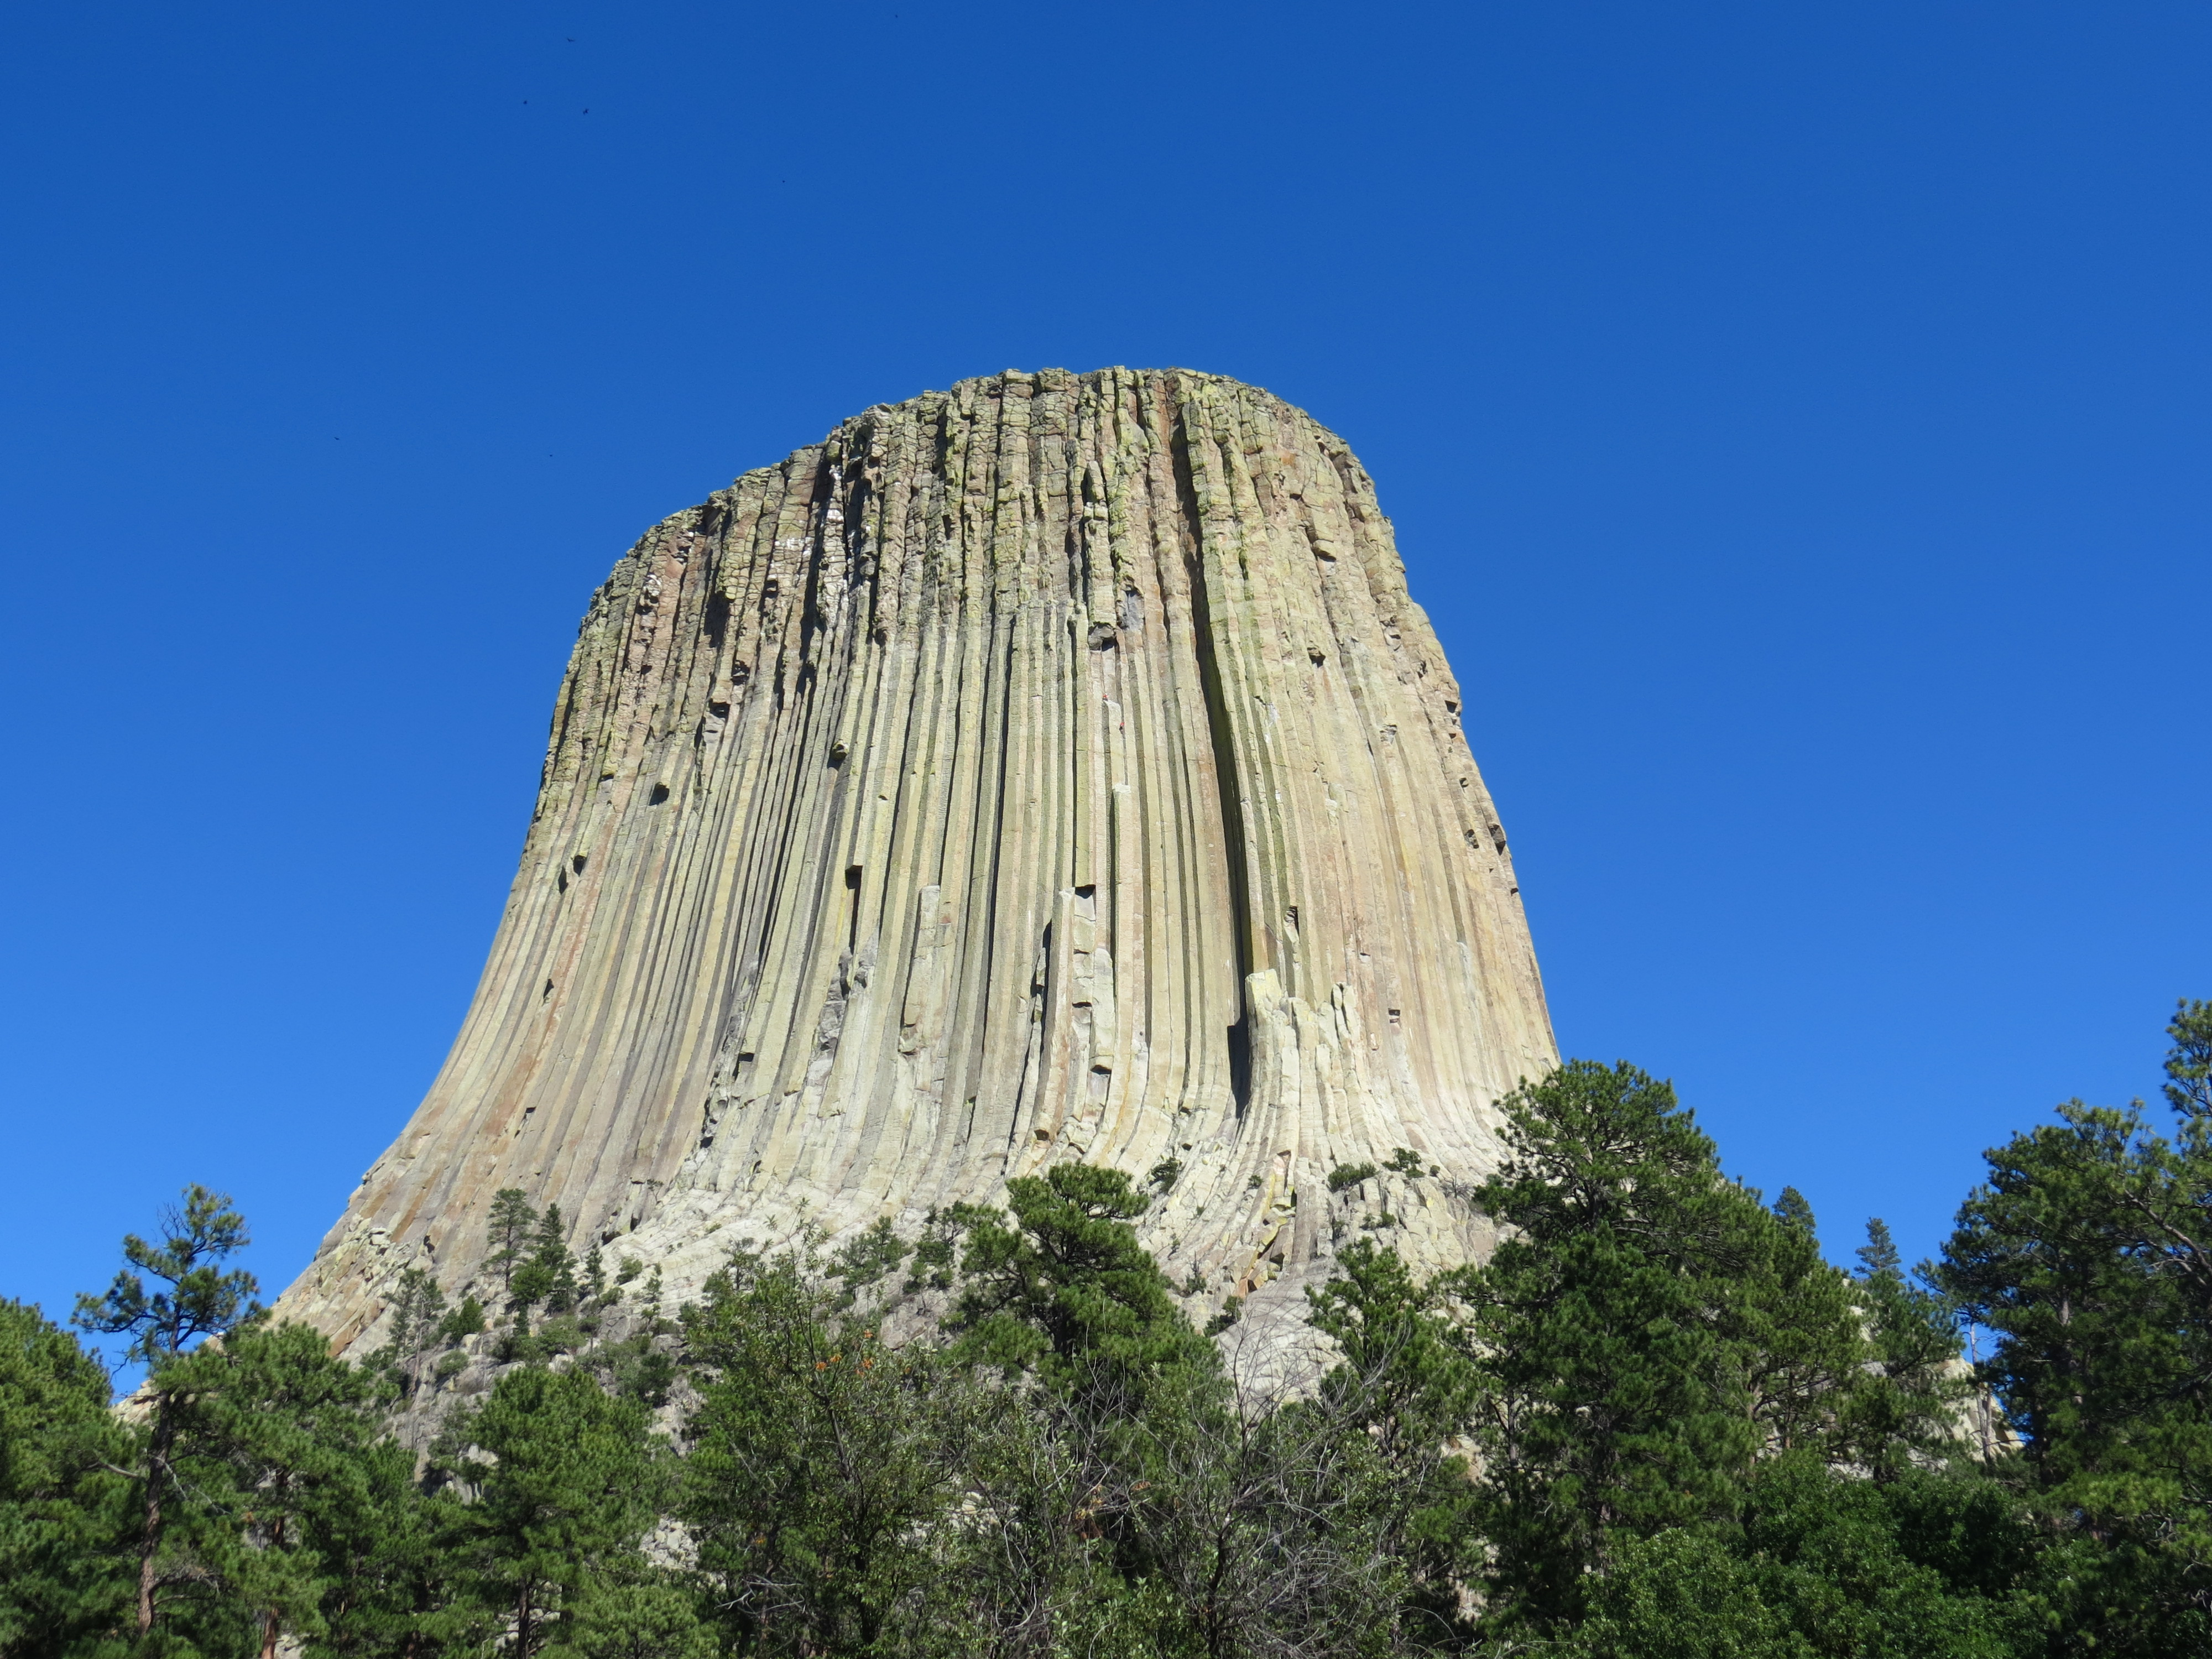 Devils Tower Wy >> Devils Tower - Black Hills The Hike - Black HillsBlack Hills The Hike